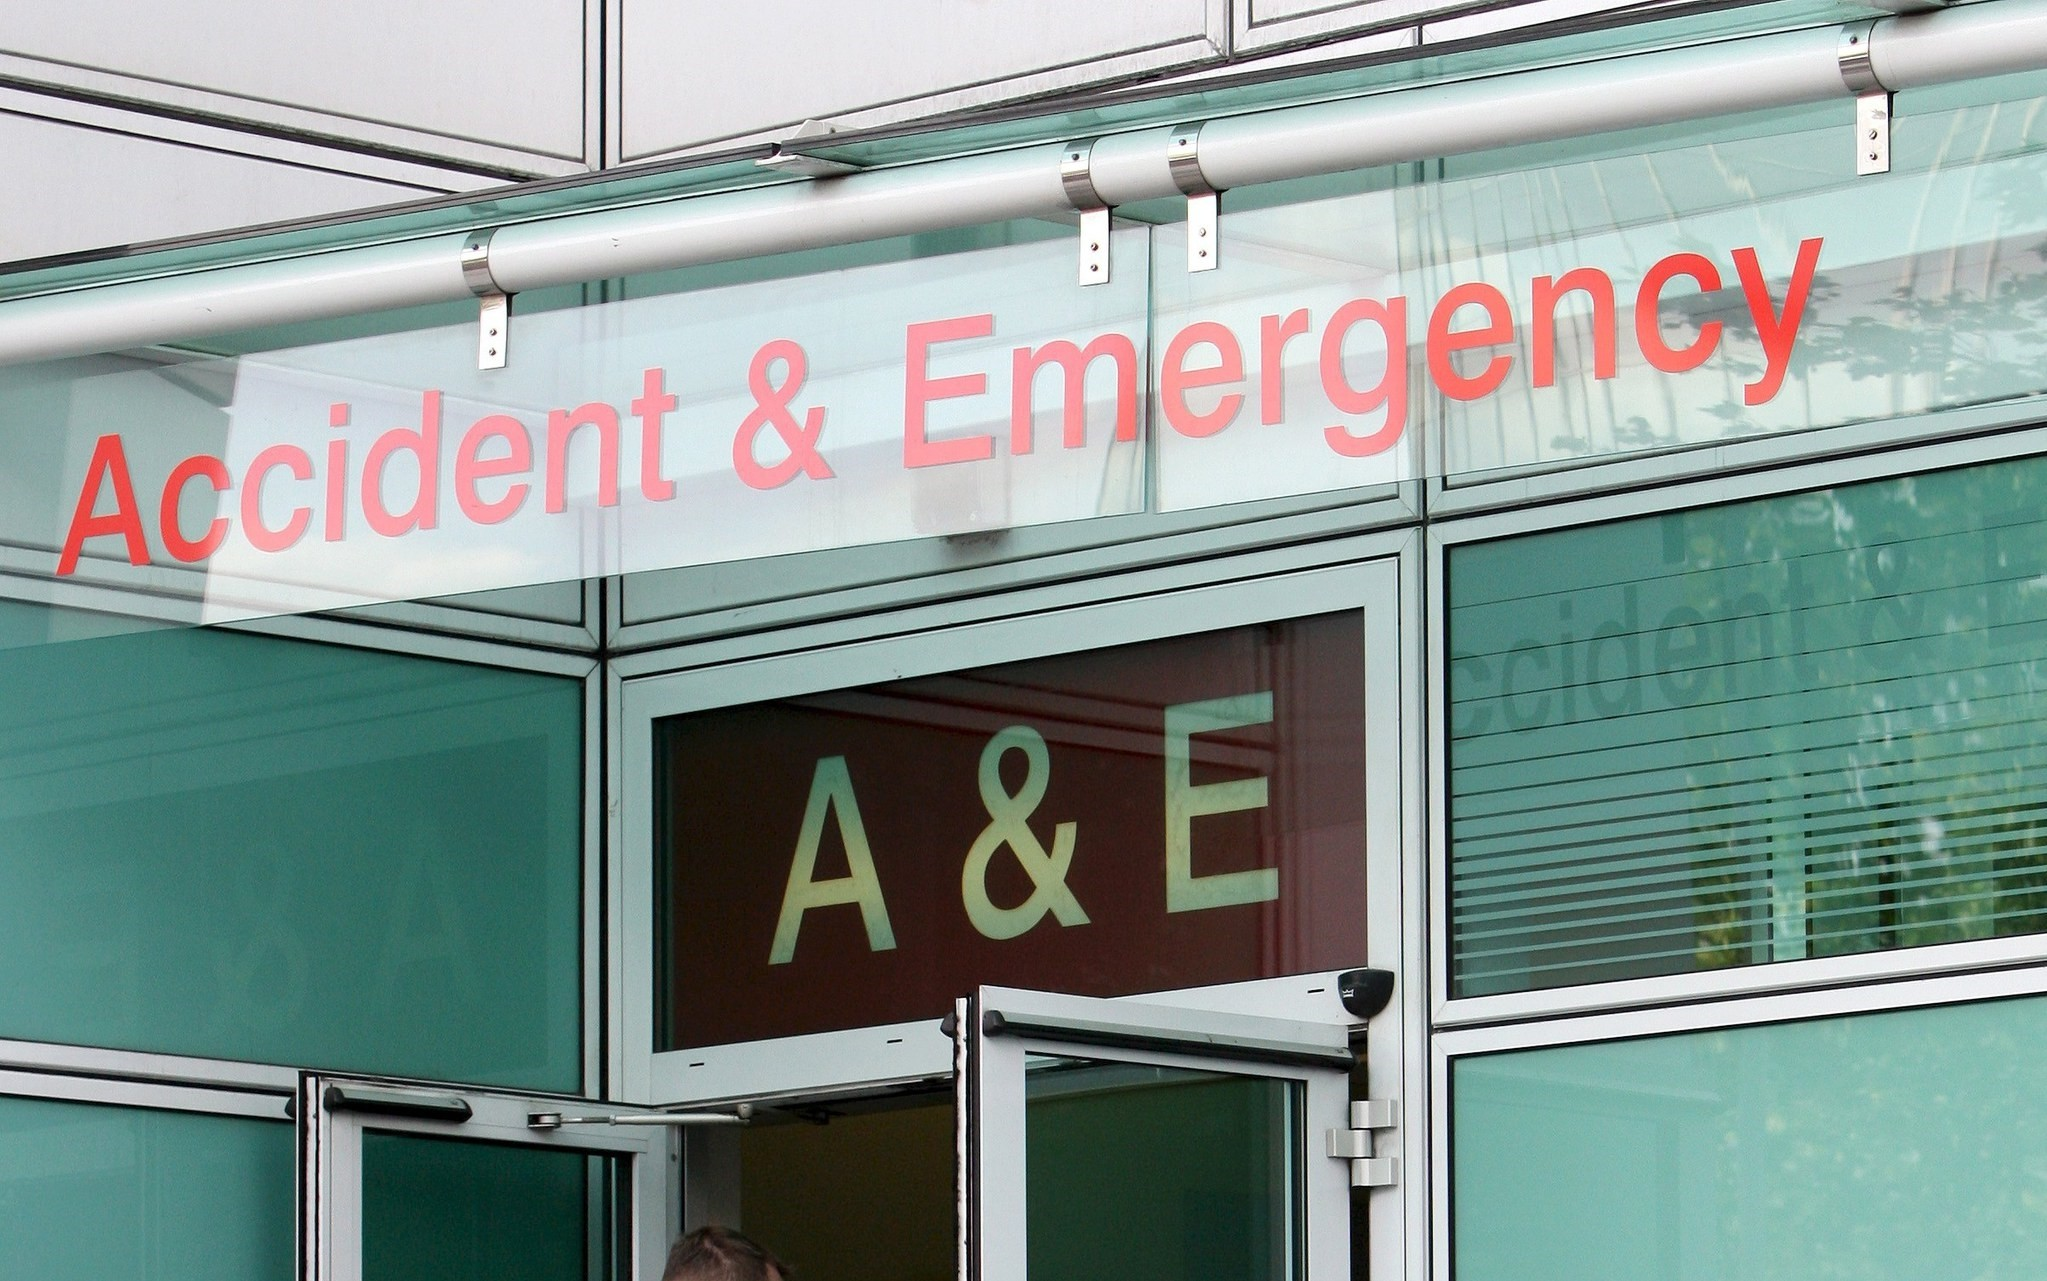 (FILE) BRITAIN HOSPITALS CYBER ATTACKt  epa05959406 (FILE) - The Accident & Emergency section of a hospital in central London, Britain, 30 June, 2008 (reissued 12 May 2017). (EPA Photo)